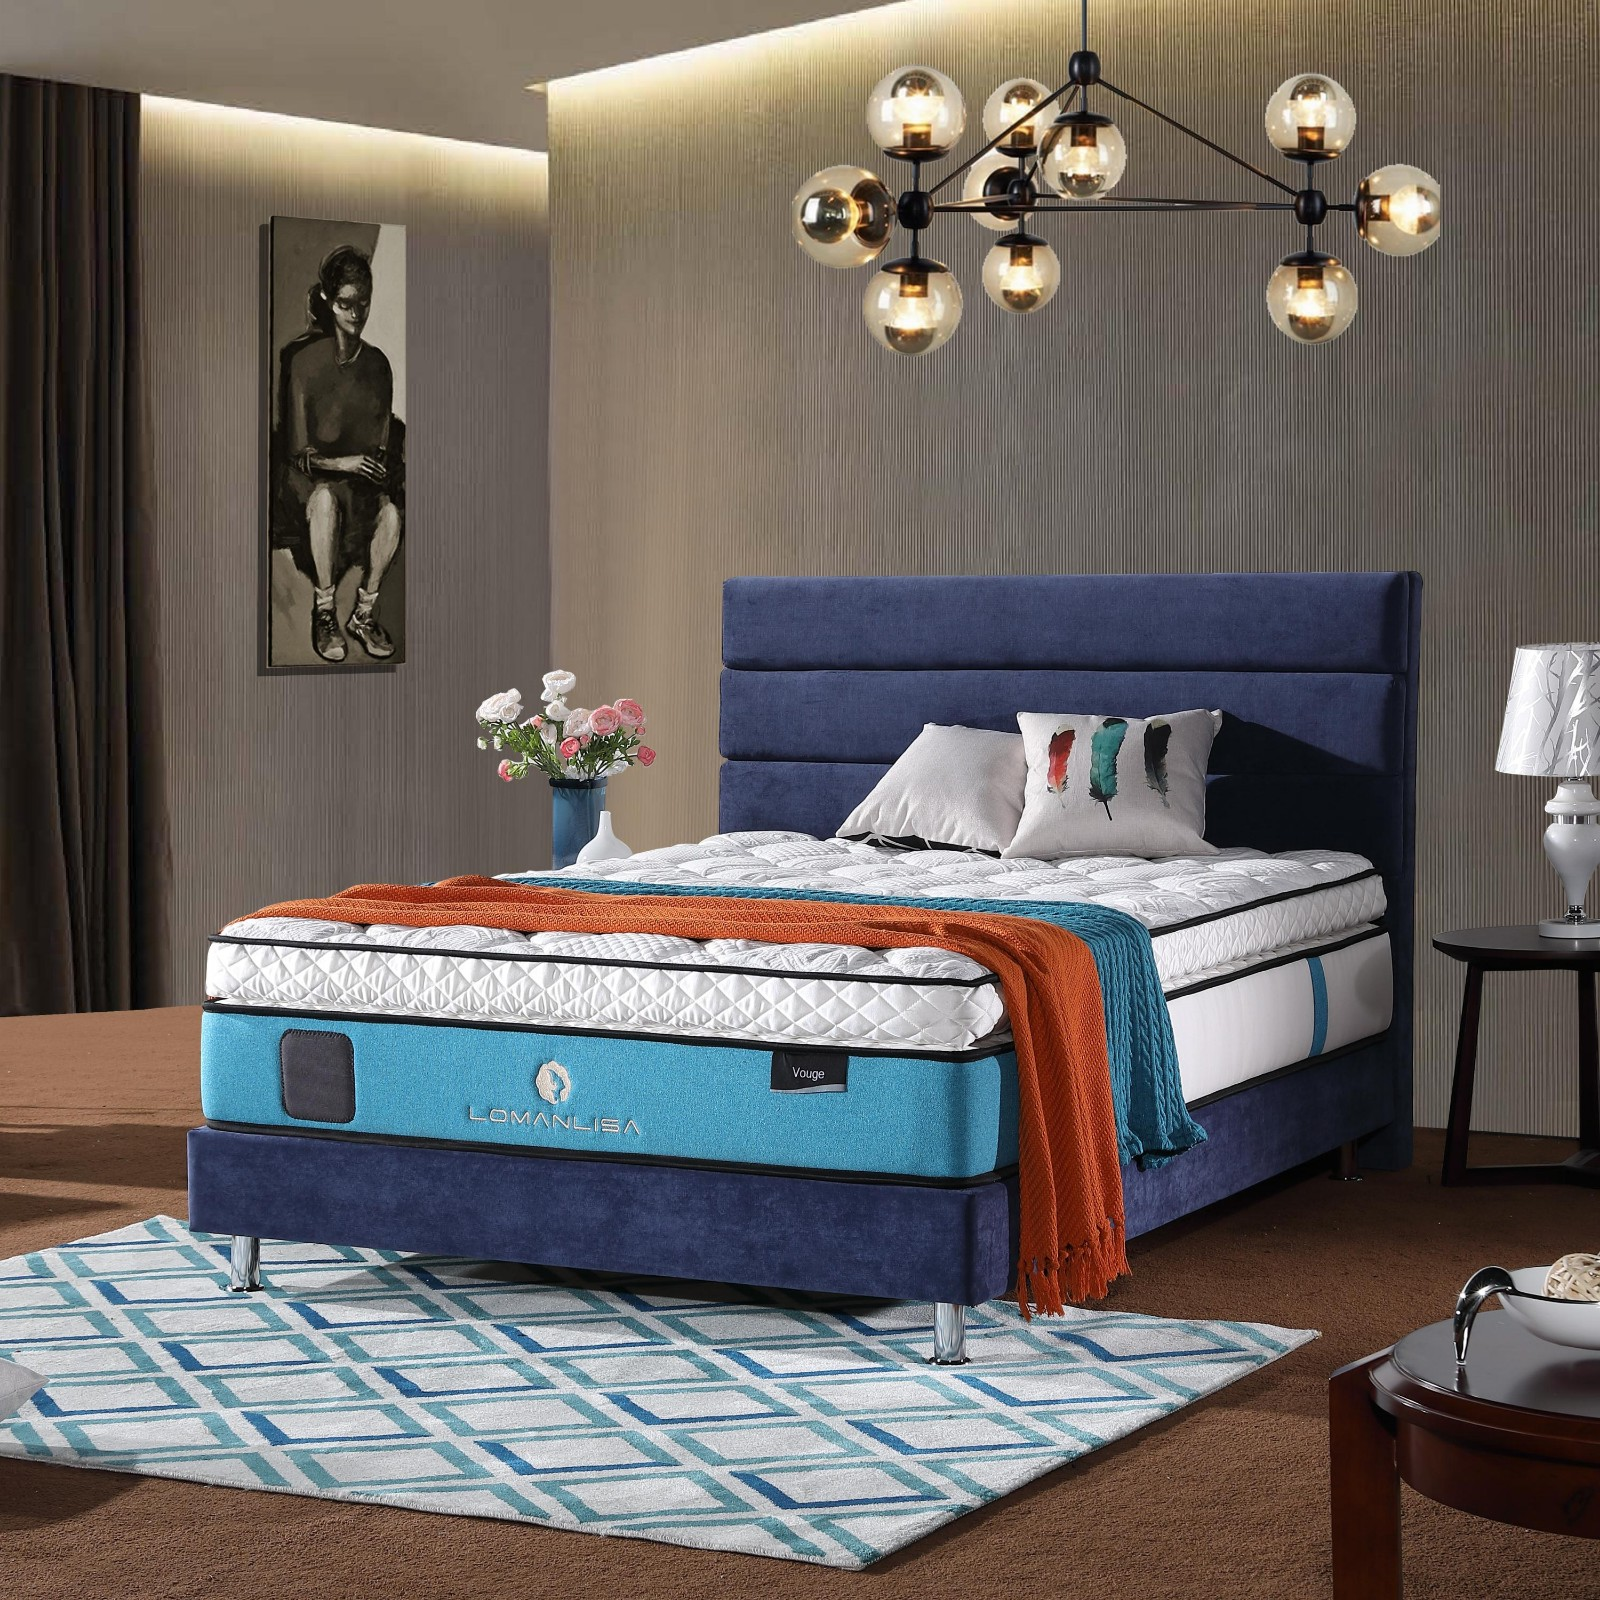 JLH popular mattress depot type for hotel-14